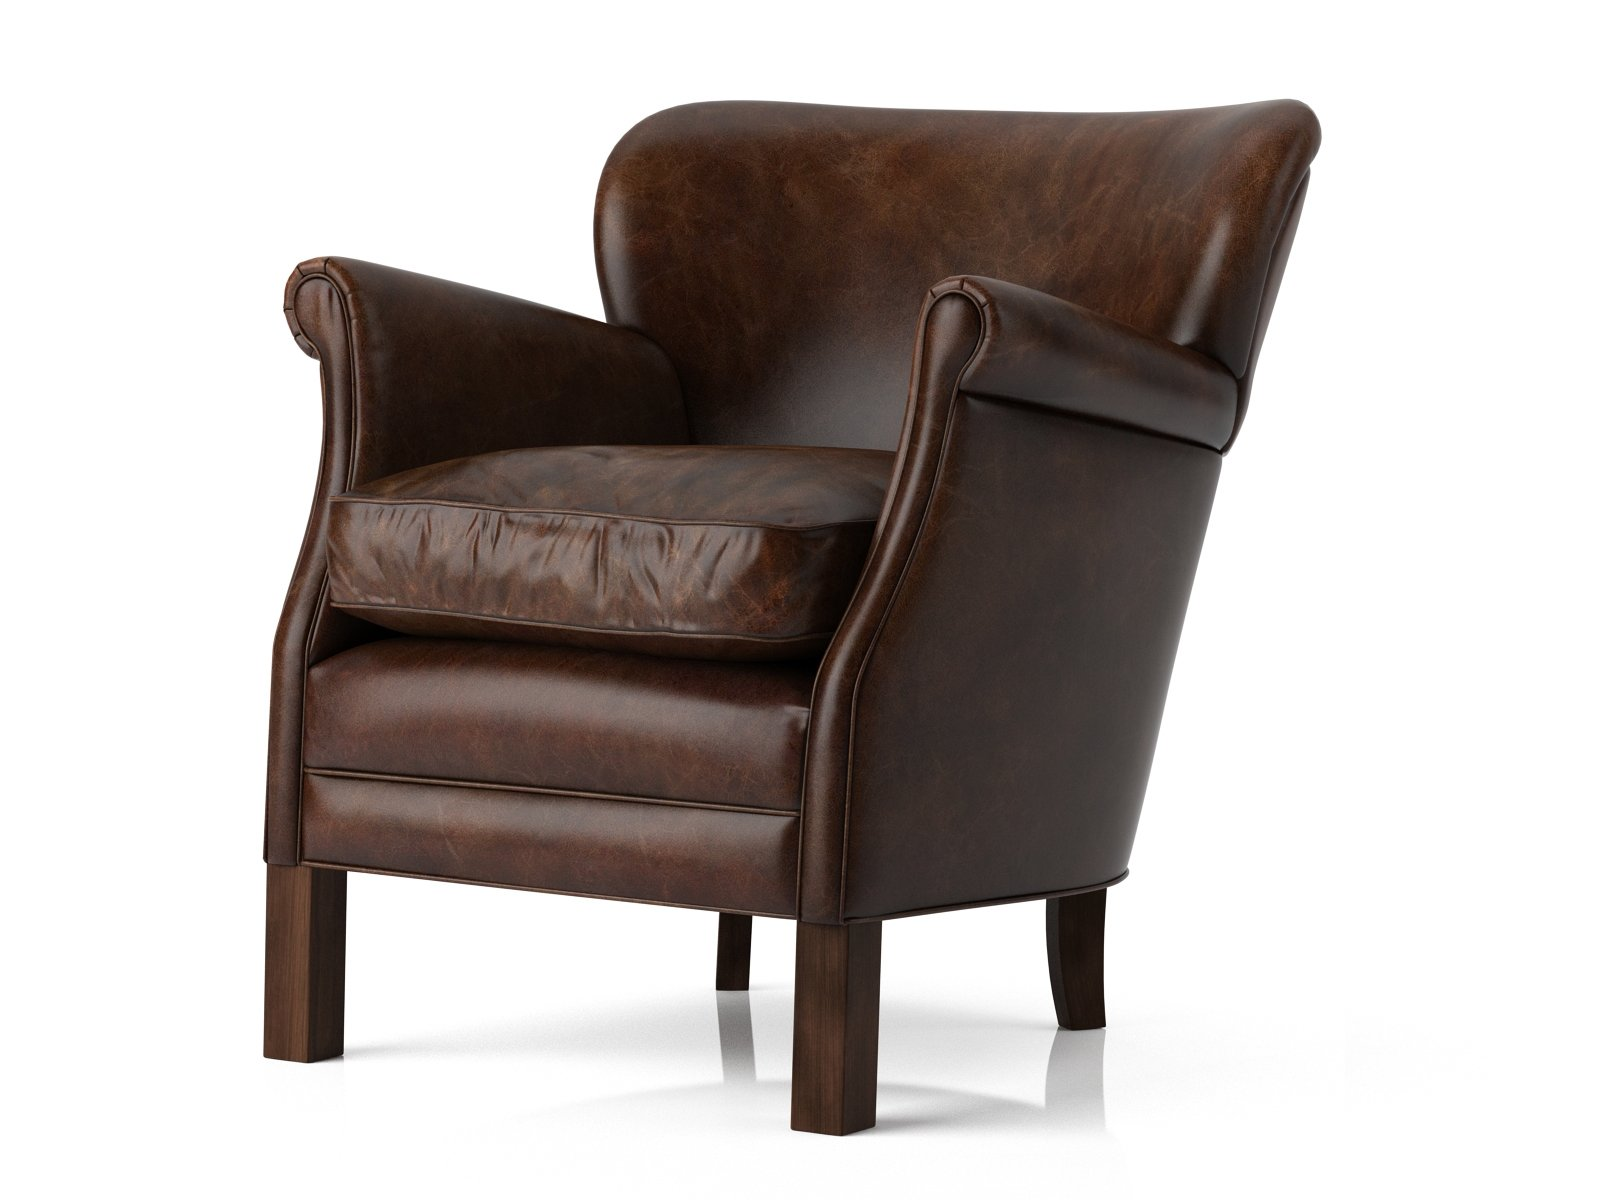 professor chair restoration hardware living room accent chairs with ottomans 39s leather 3d model